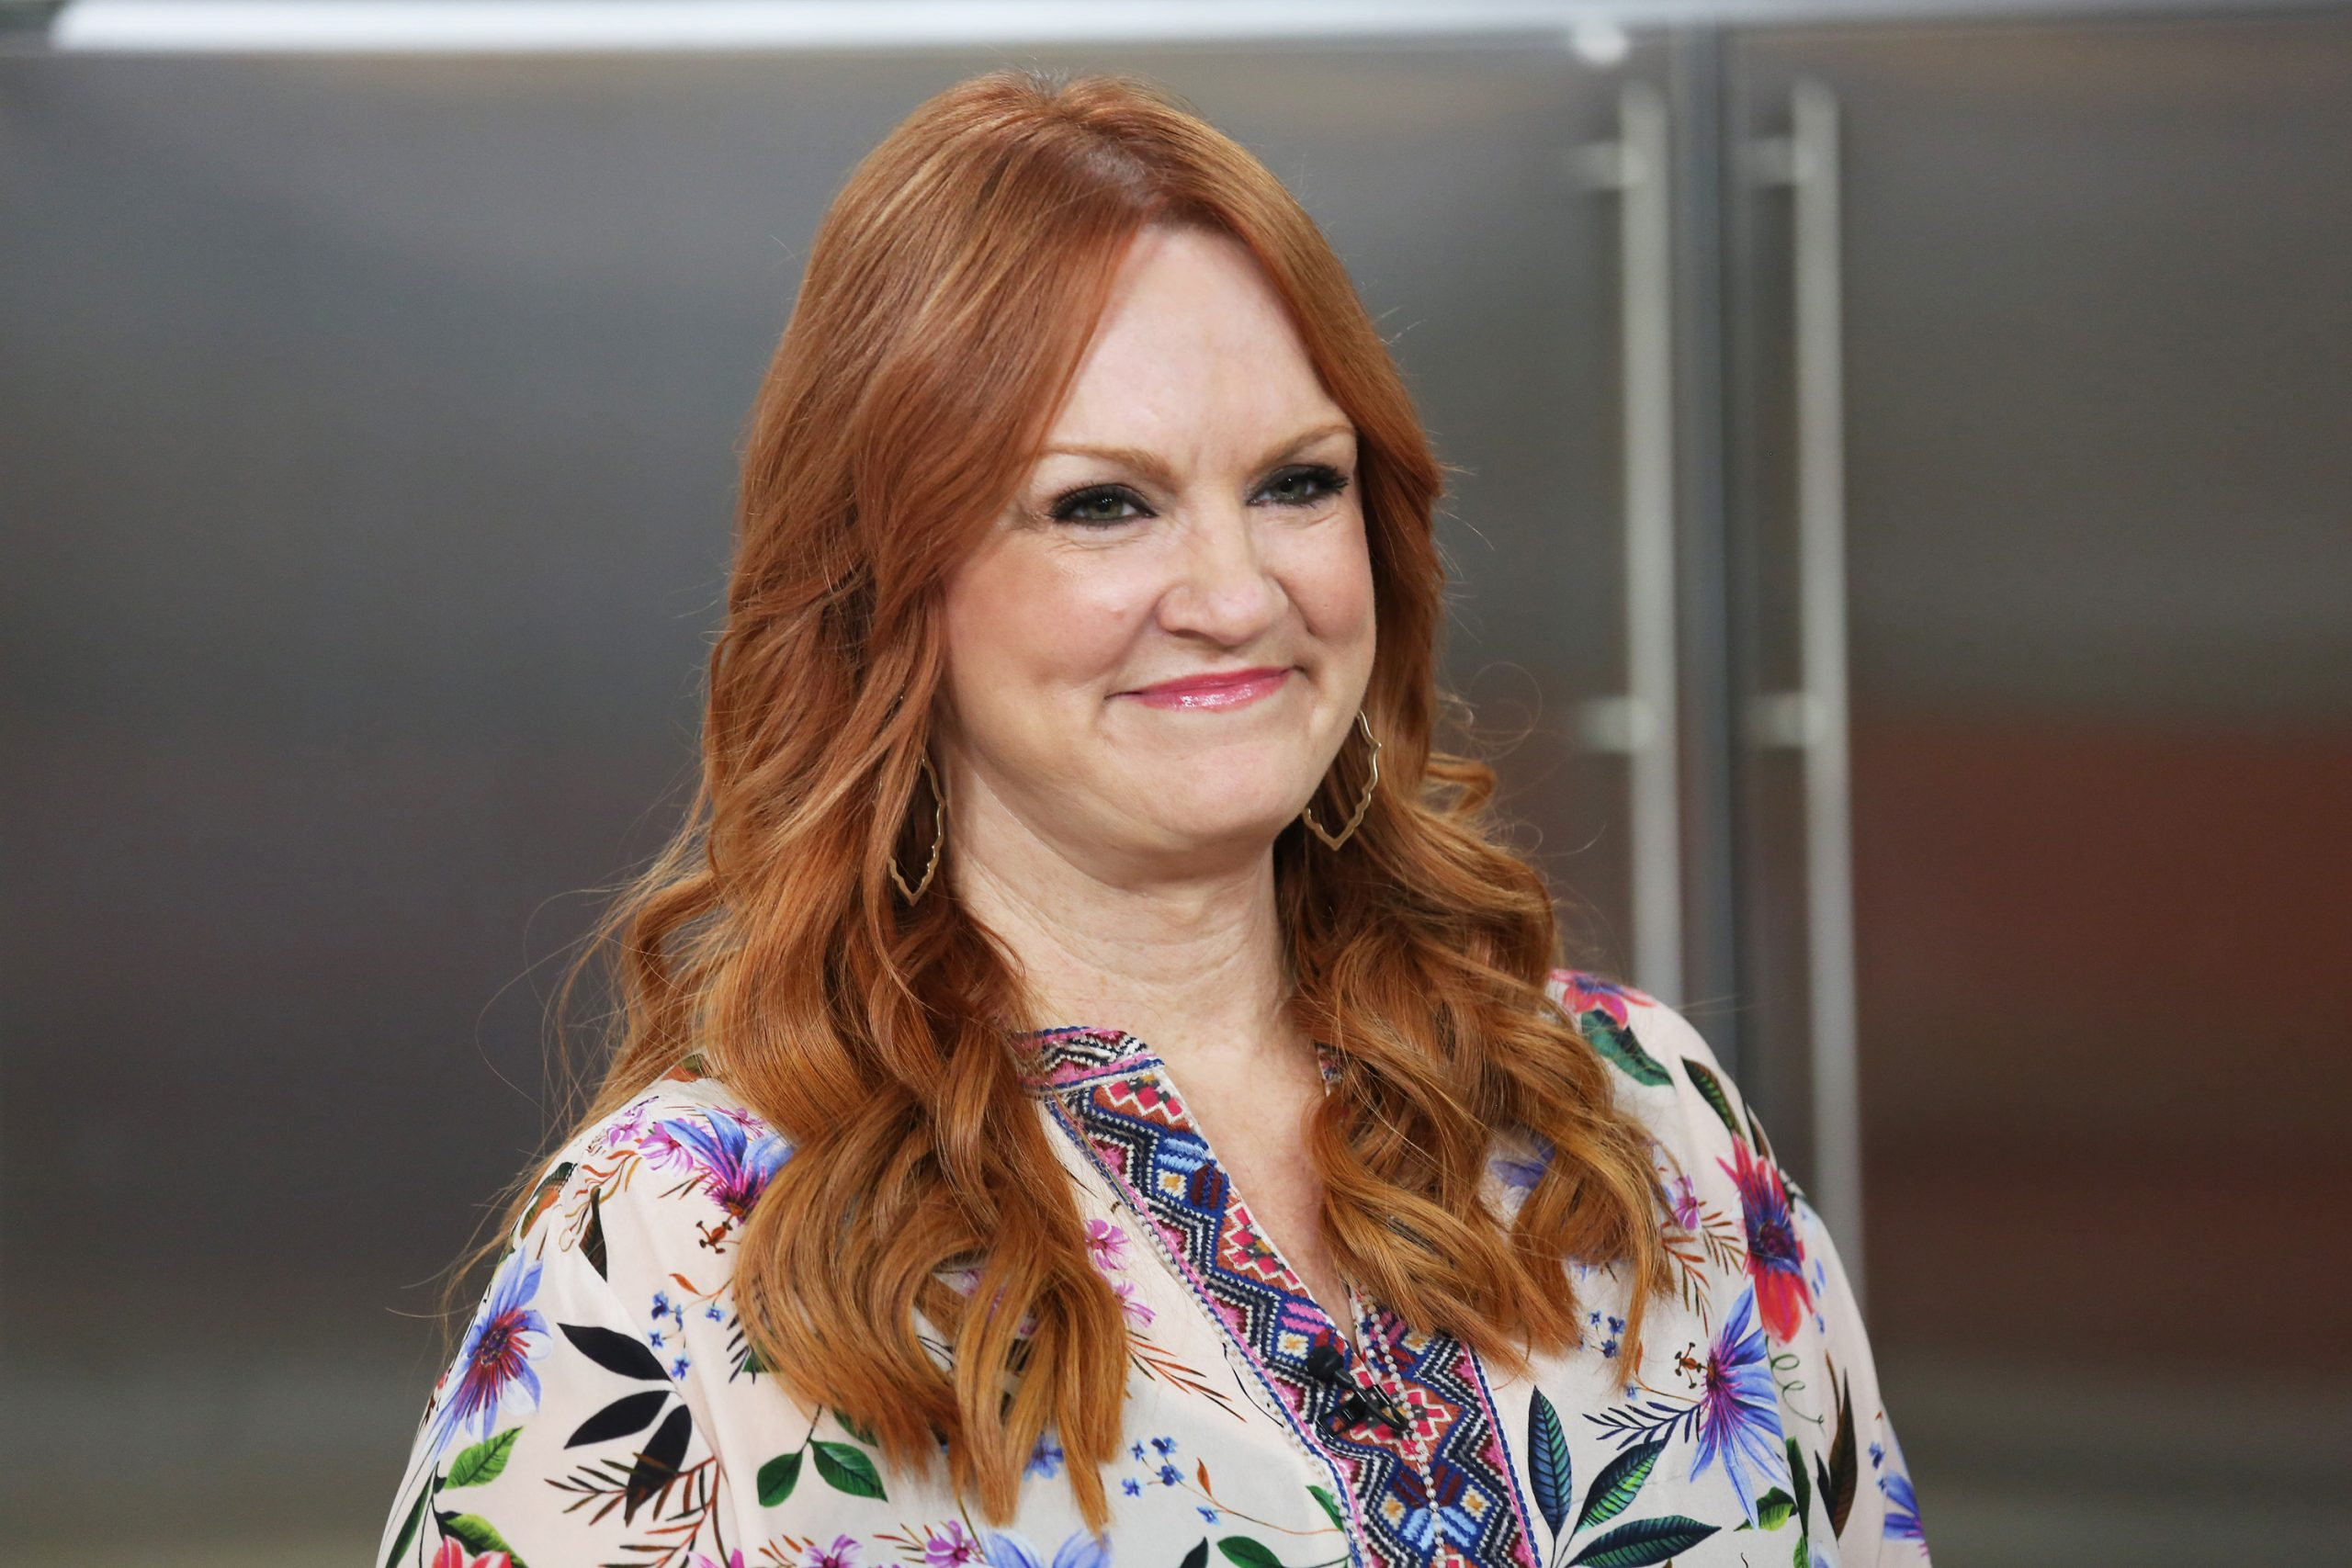 'The Pioneer Woman' Ree Drummond smiles at the camera. She wears a multi-color print top.